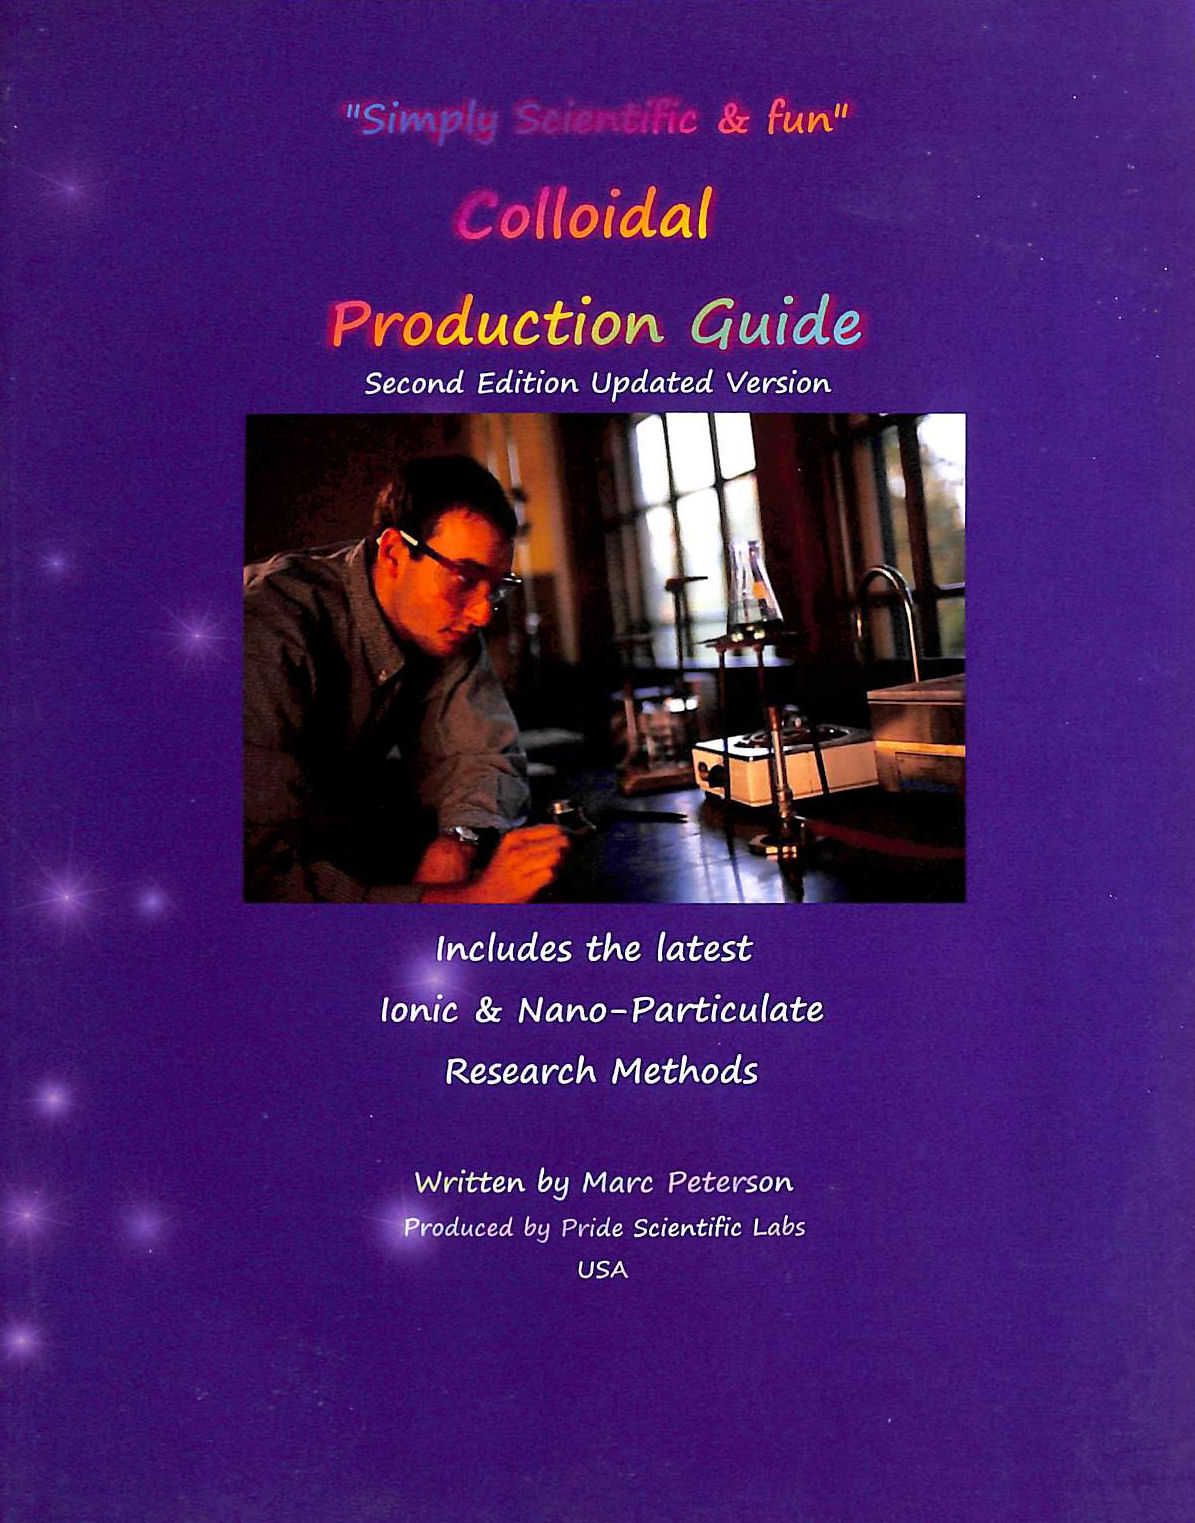 Image for Colloidal Production Guide: Second Edition Updated Version, Includes the latest Ionic & Nan-Particulate Research Methods